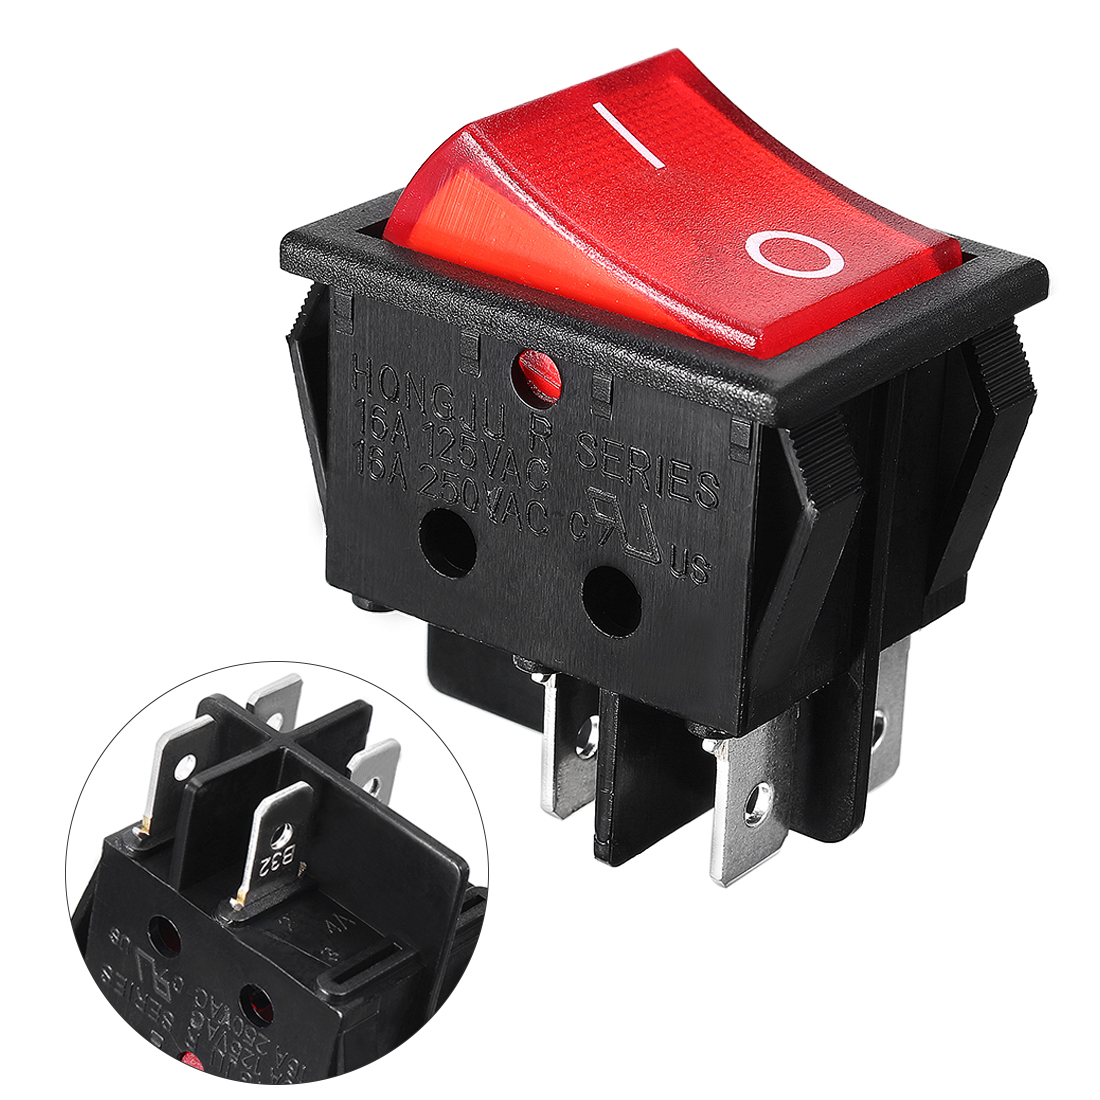 AC 110-220V Lamp Volt Red Button SPDT 2p Soldering Boat Rocker Switch UL Listed